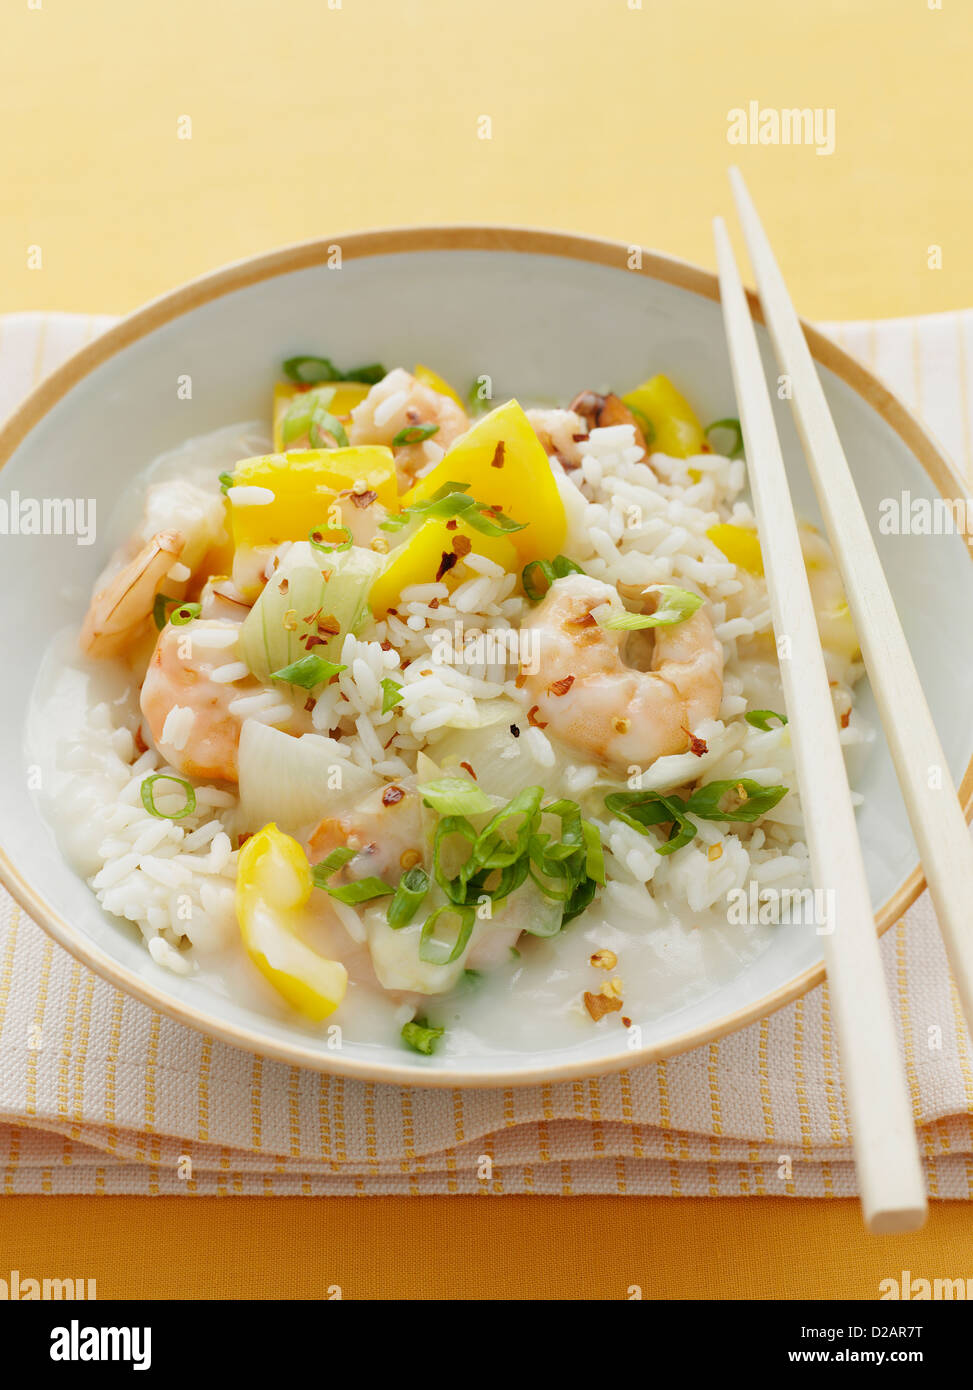 Plate of chili prawns with rice - Stock Image